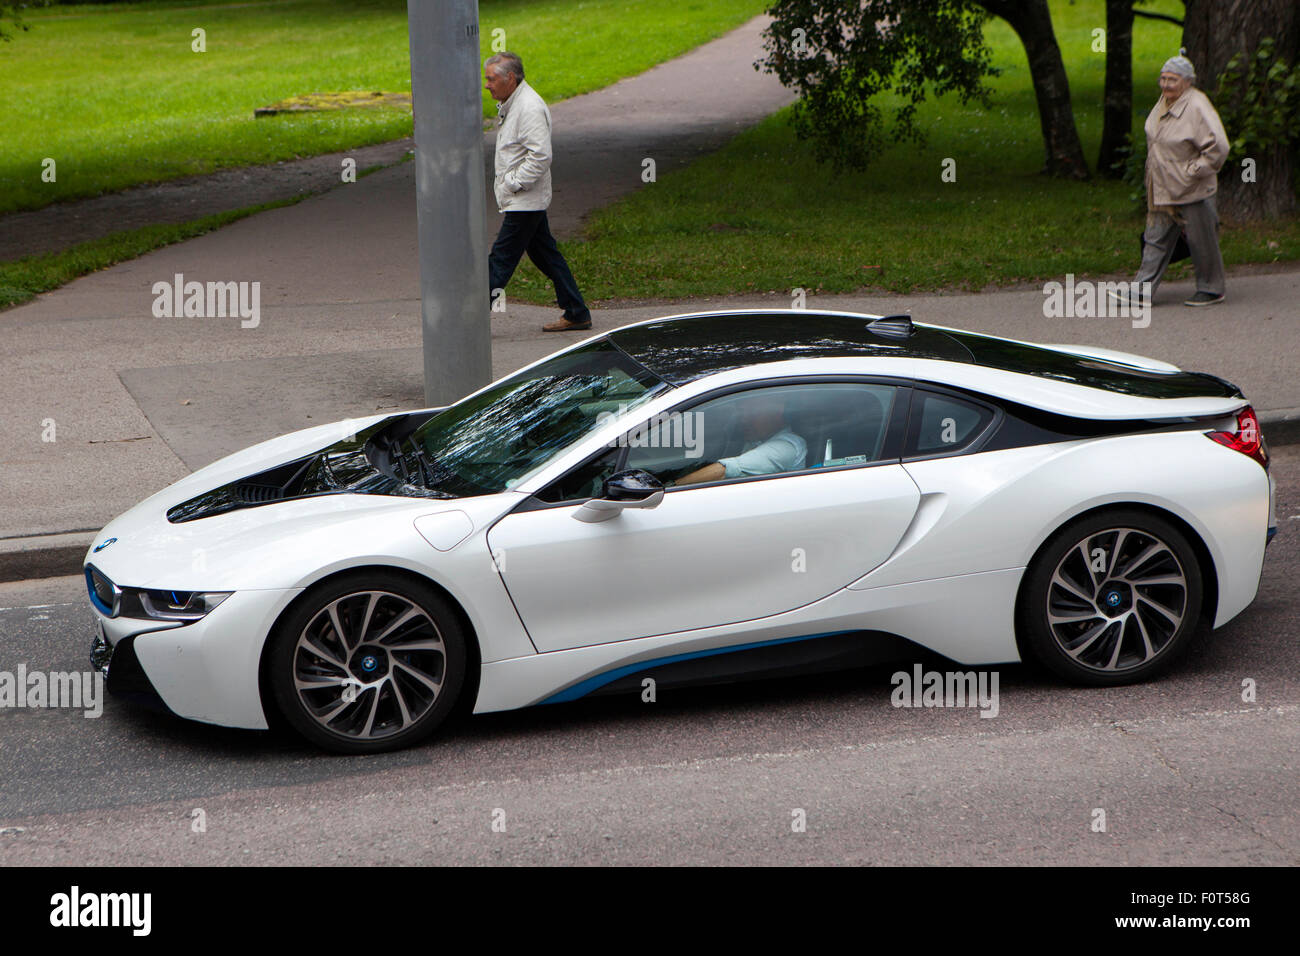 The 2015 Model Bmw I8 Plug In Hybrid Sports Car In White Driving In